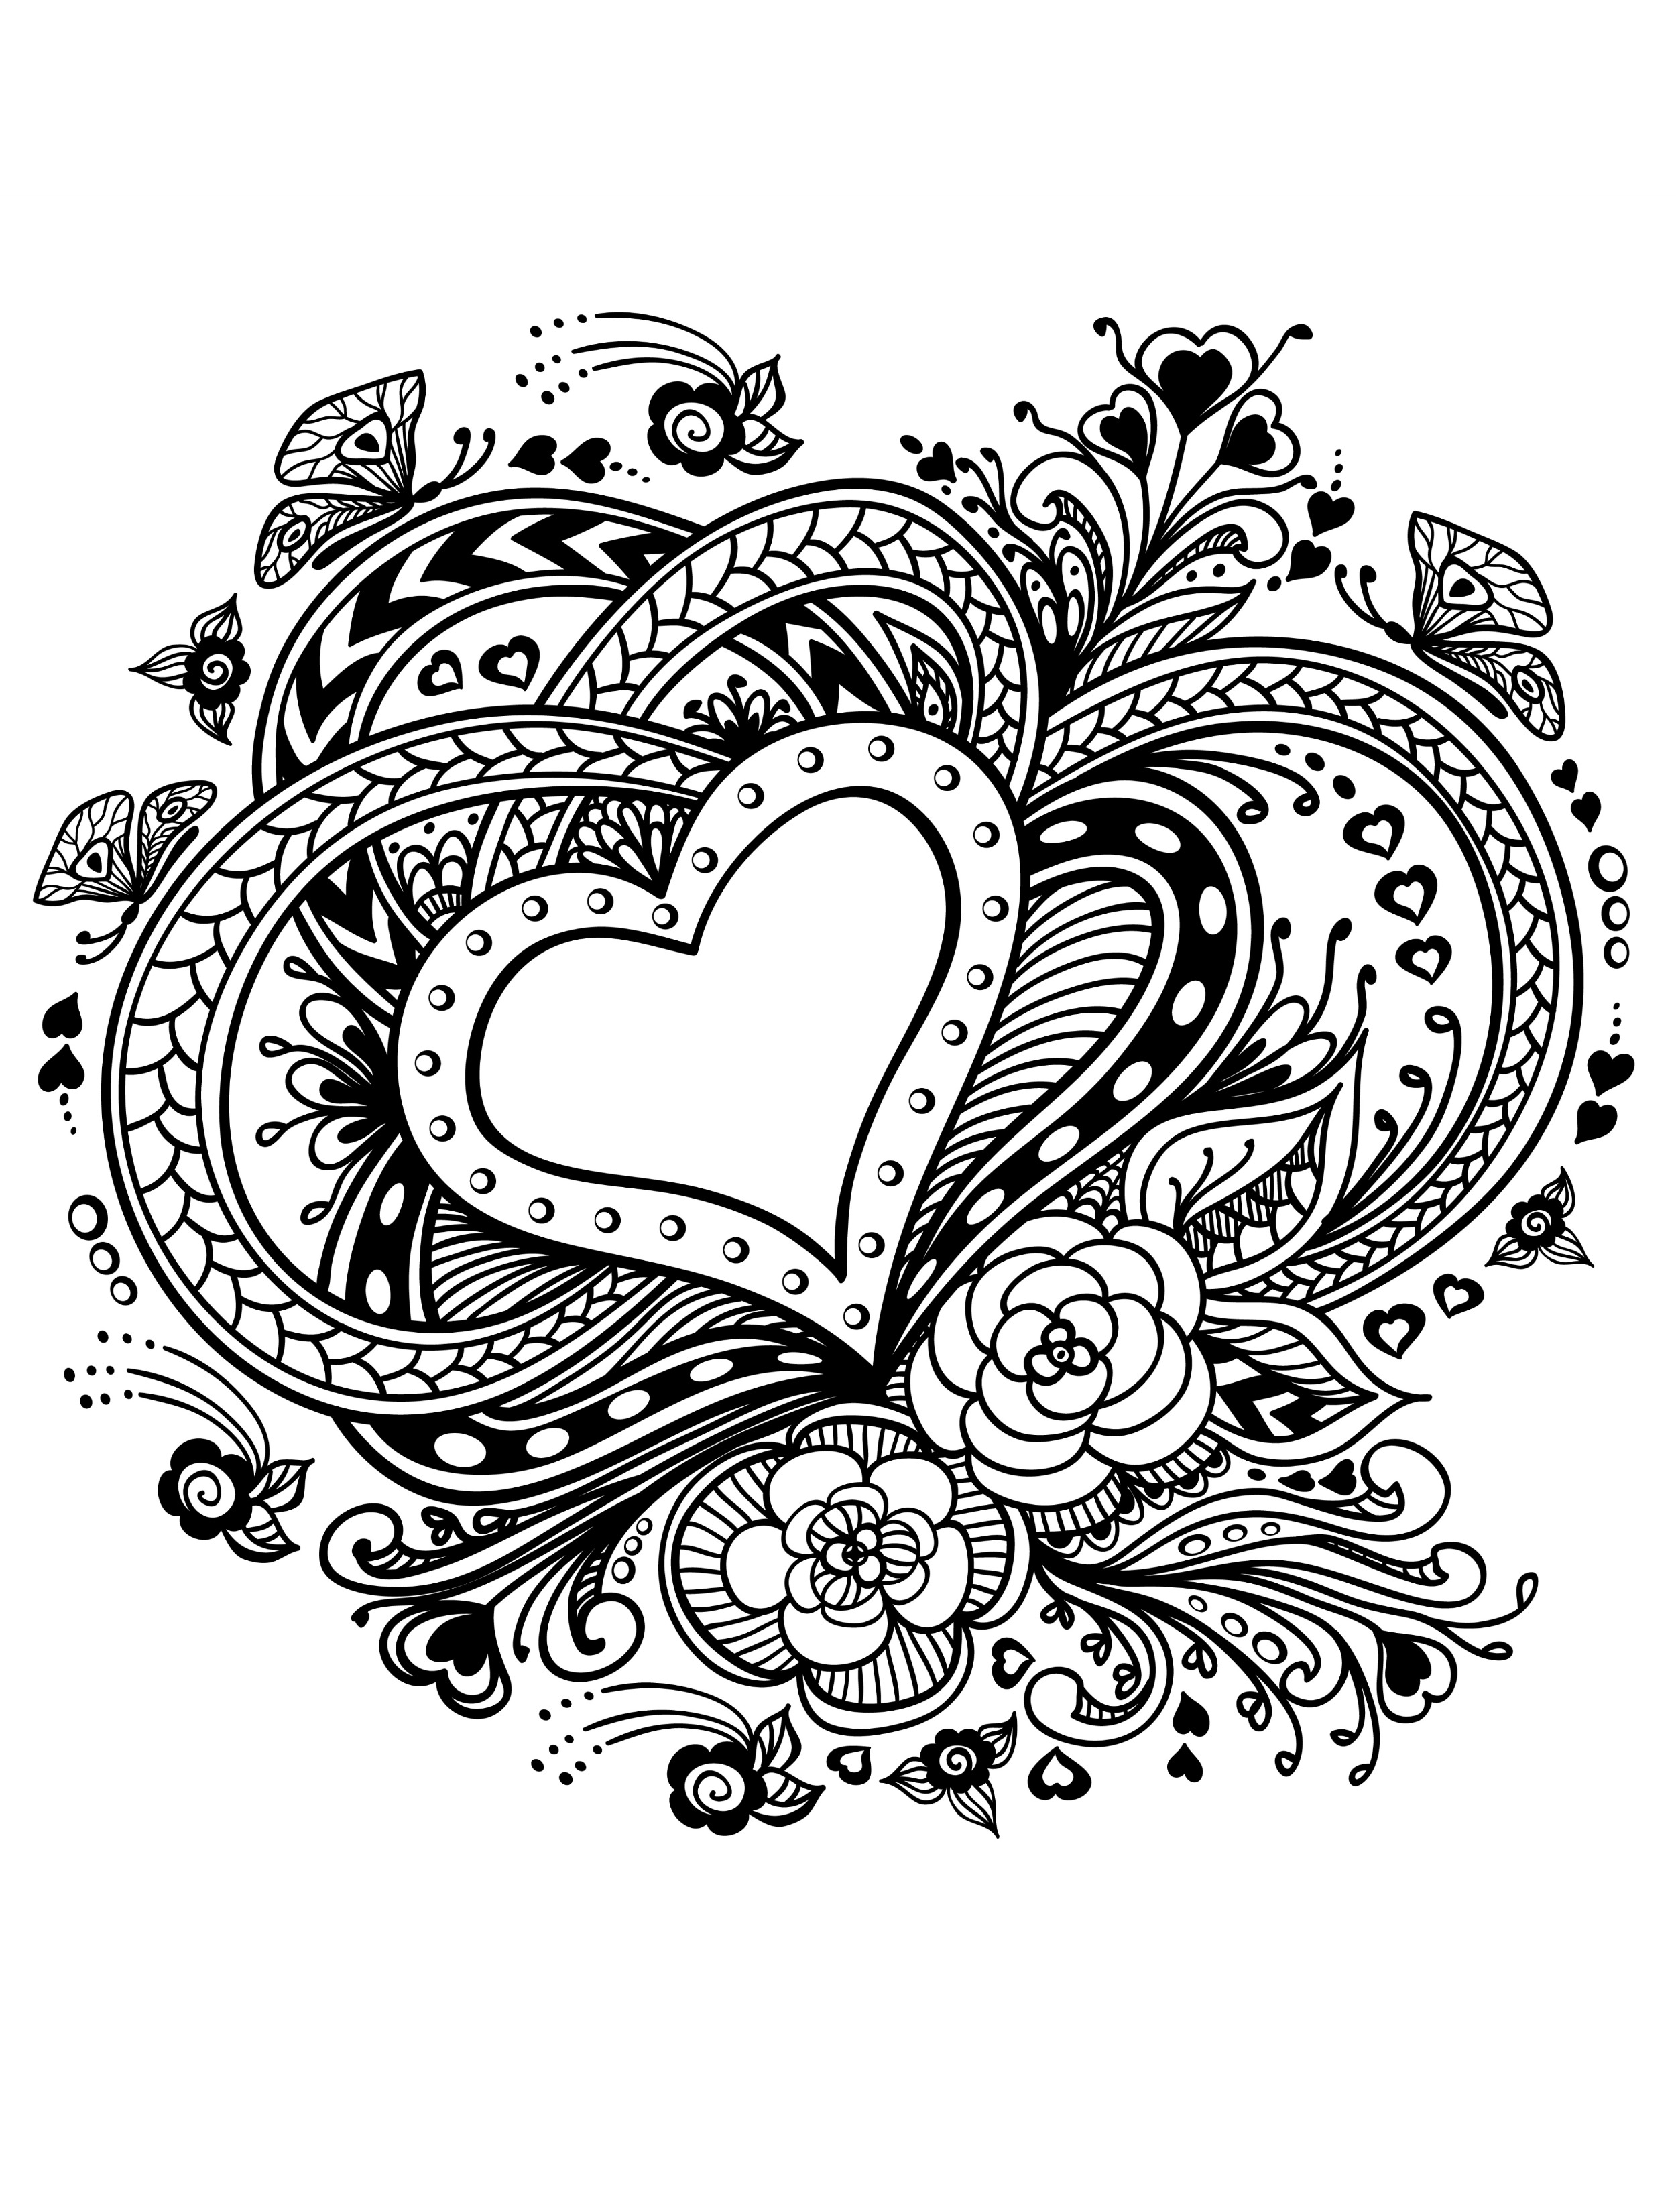 coloring book for adults valentines day coloring pages for adults best coloring adults coloring for book